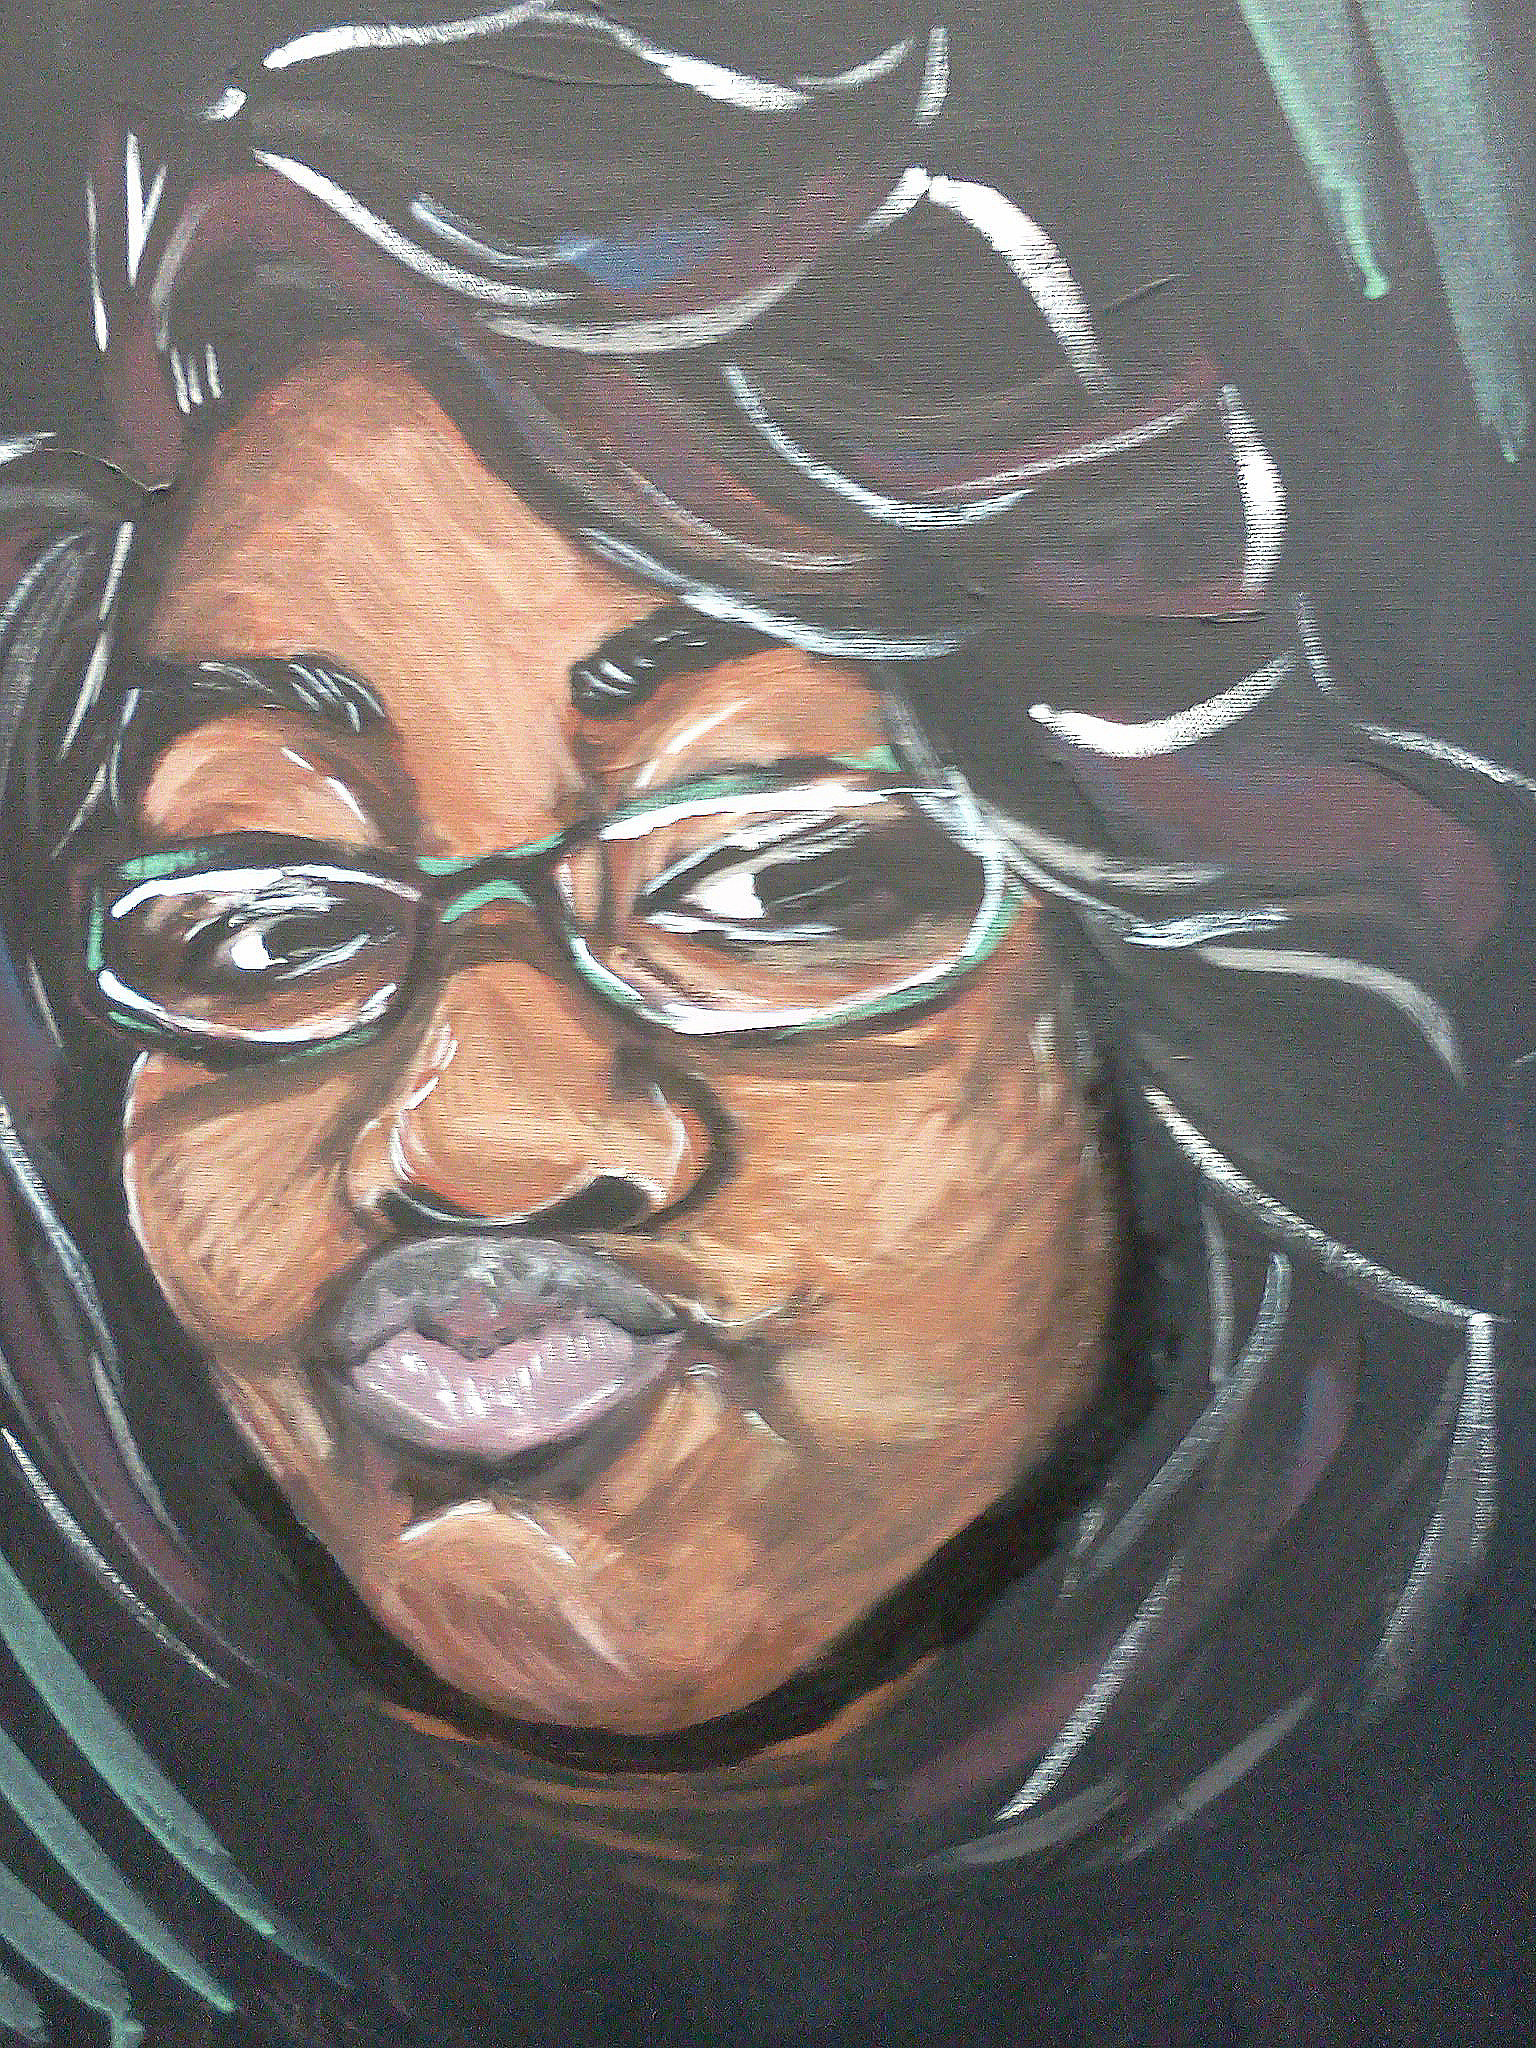 Aldora  2012, acrylic on canvas, 16in x 20in